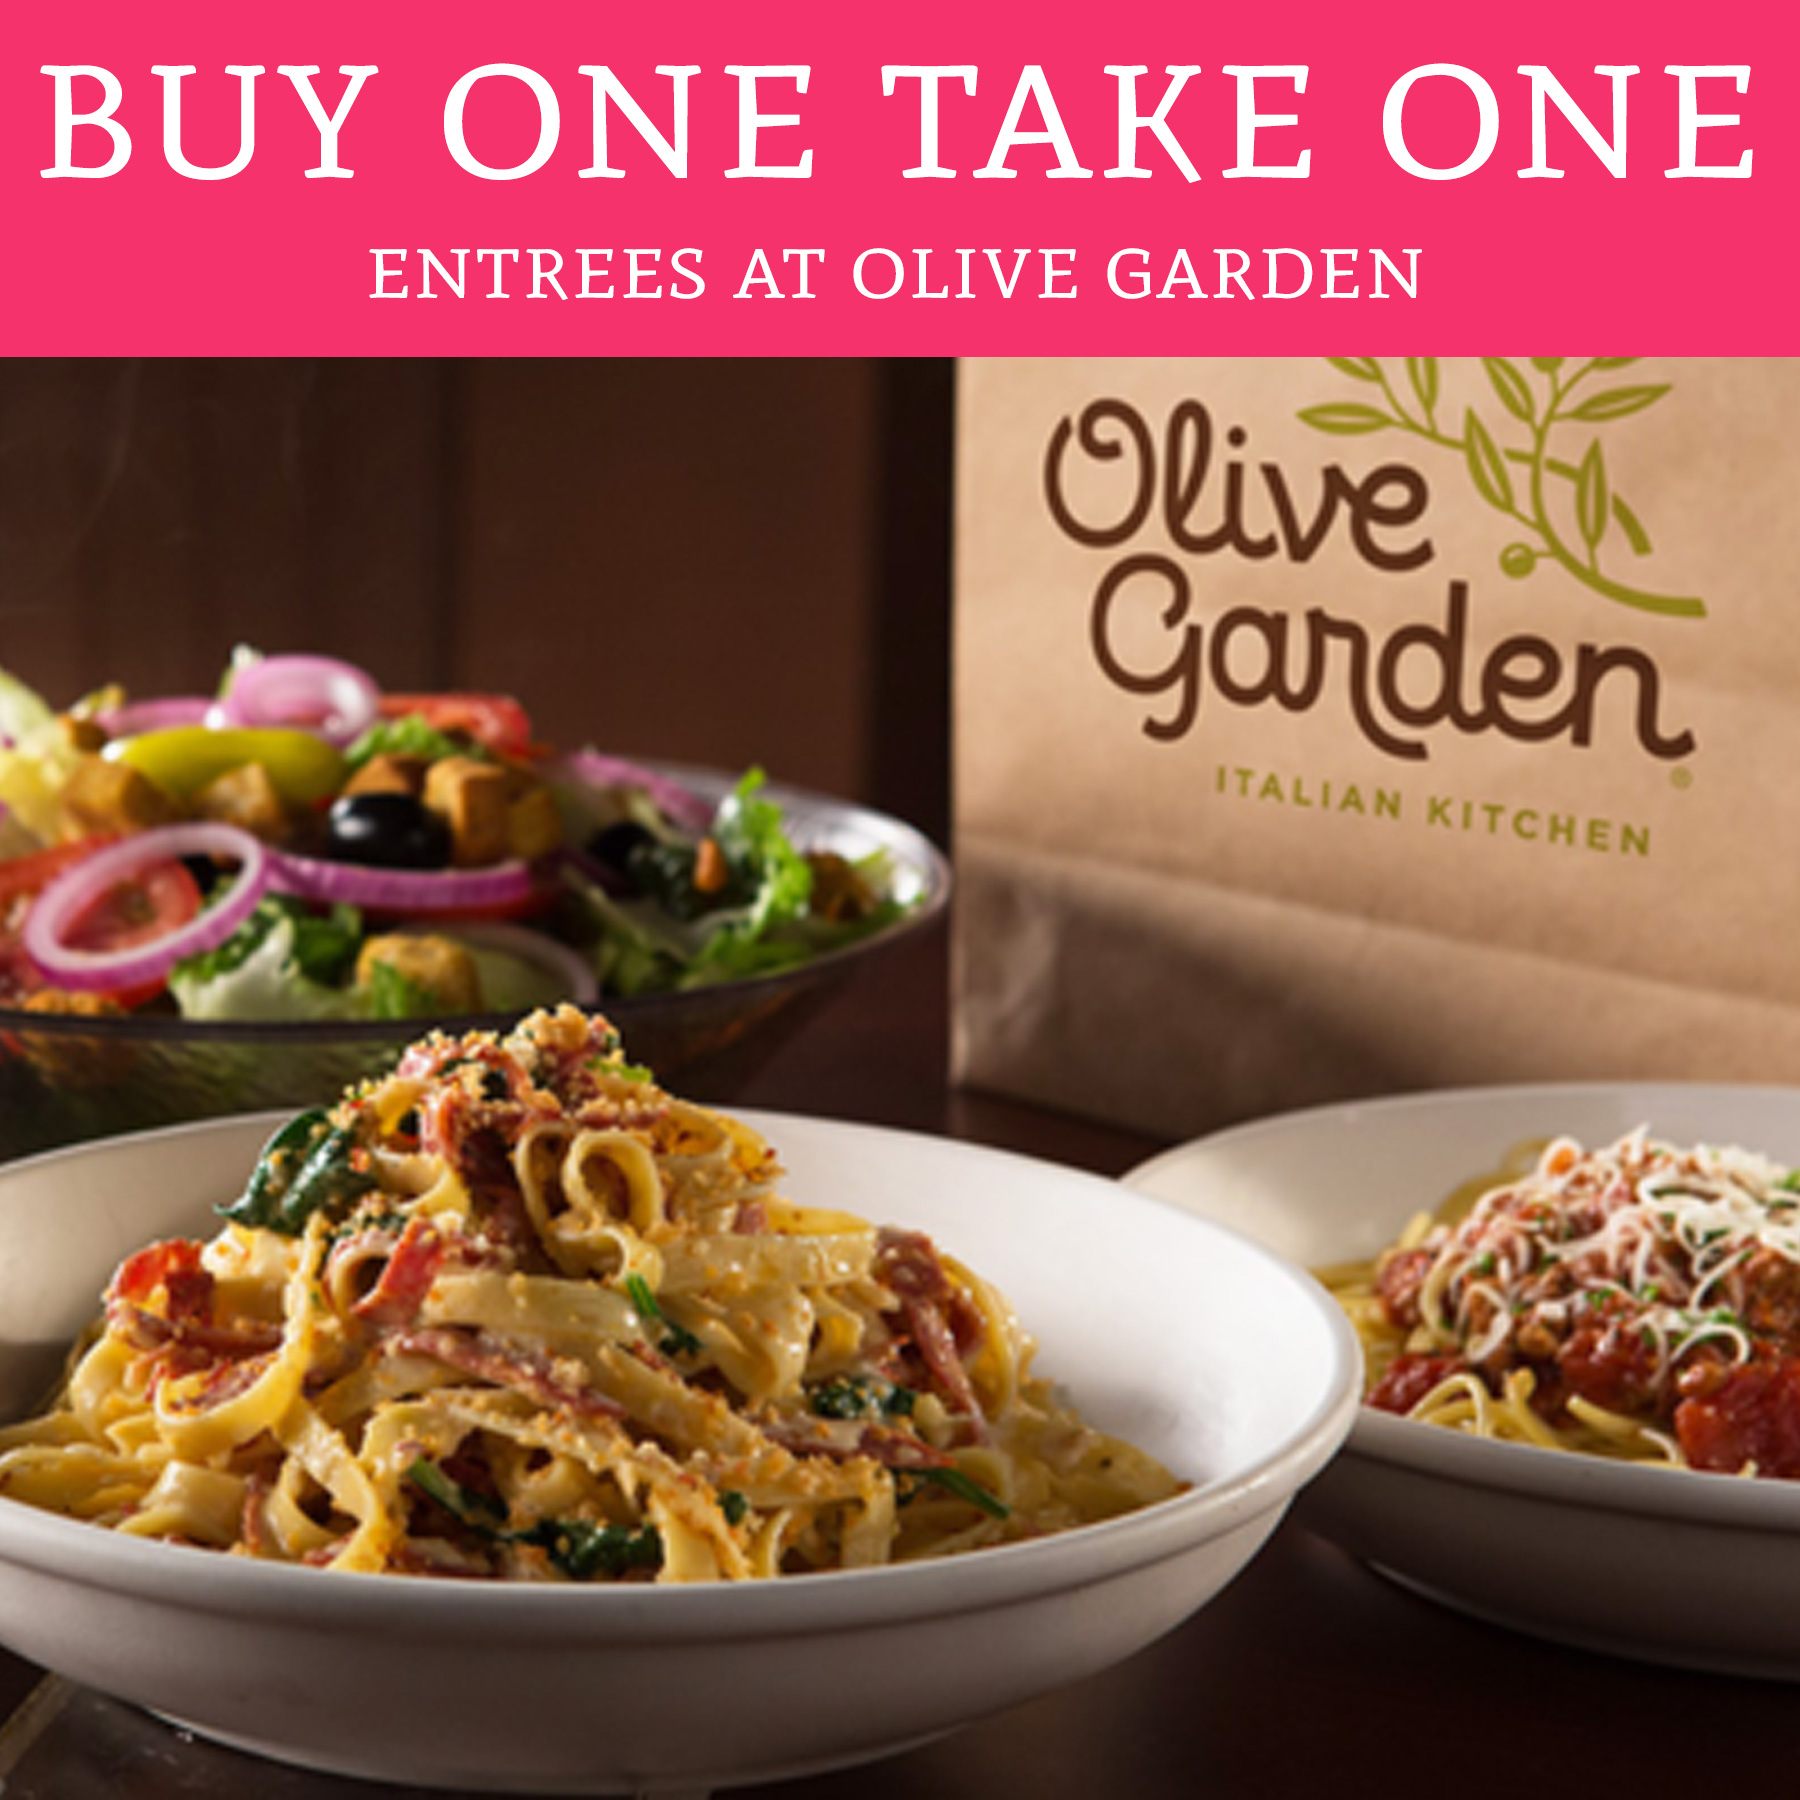 YUM! Buy One Take One Entrees @ Olive Garden - Deal Hunting Babe